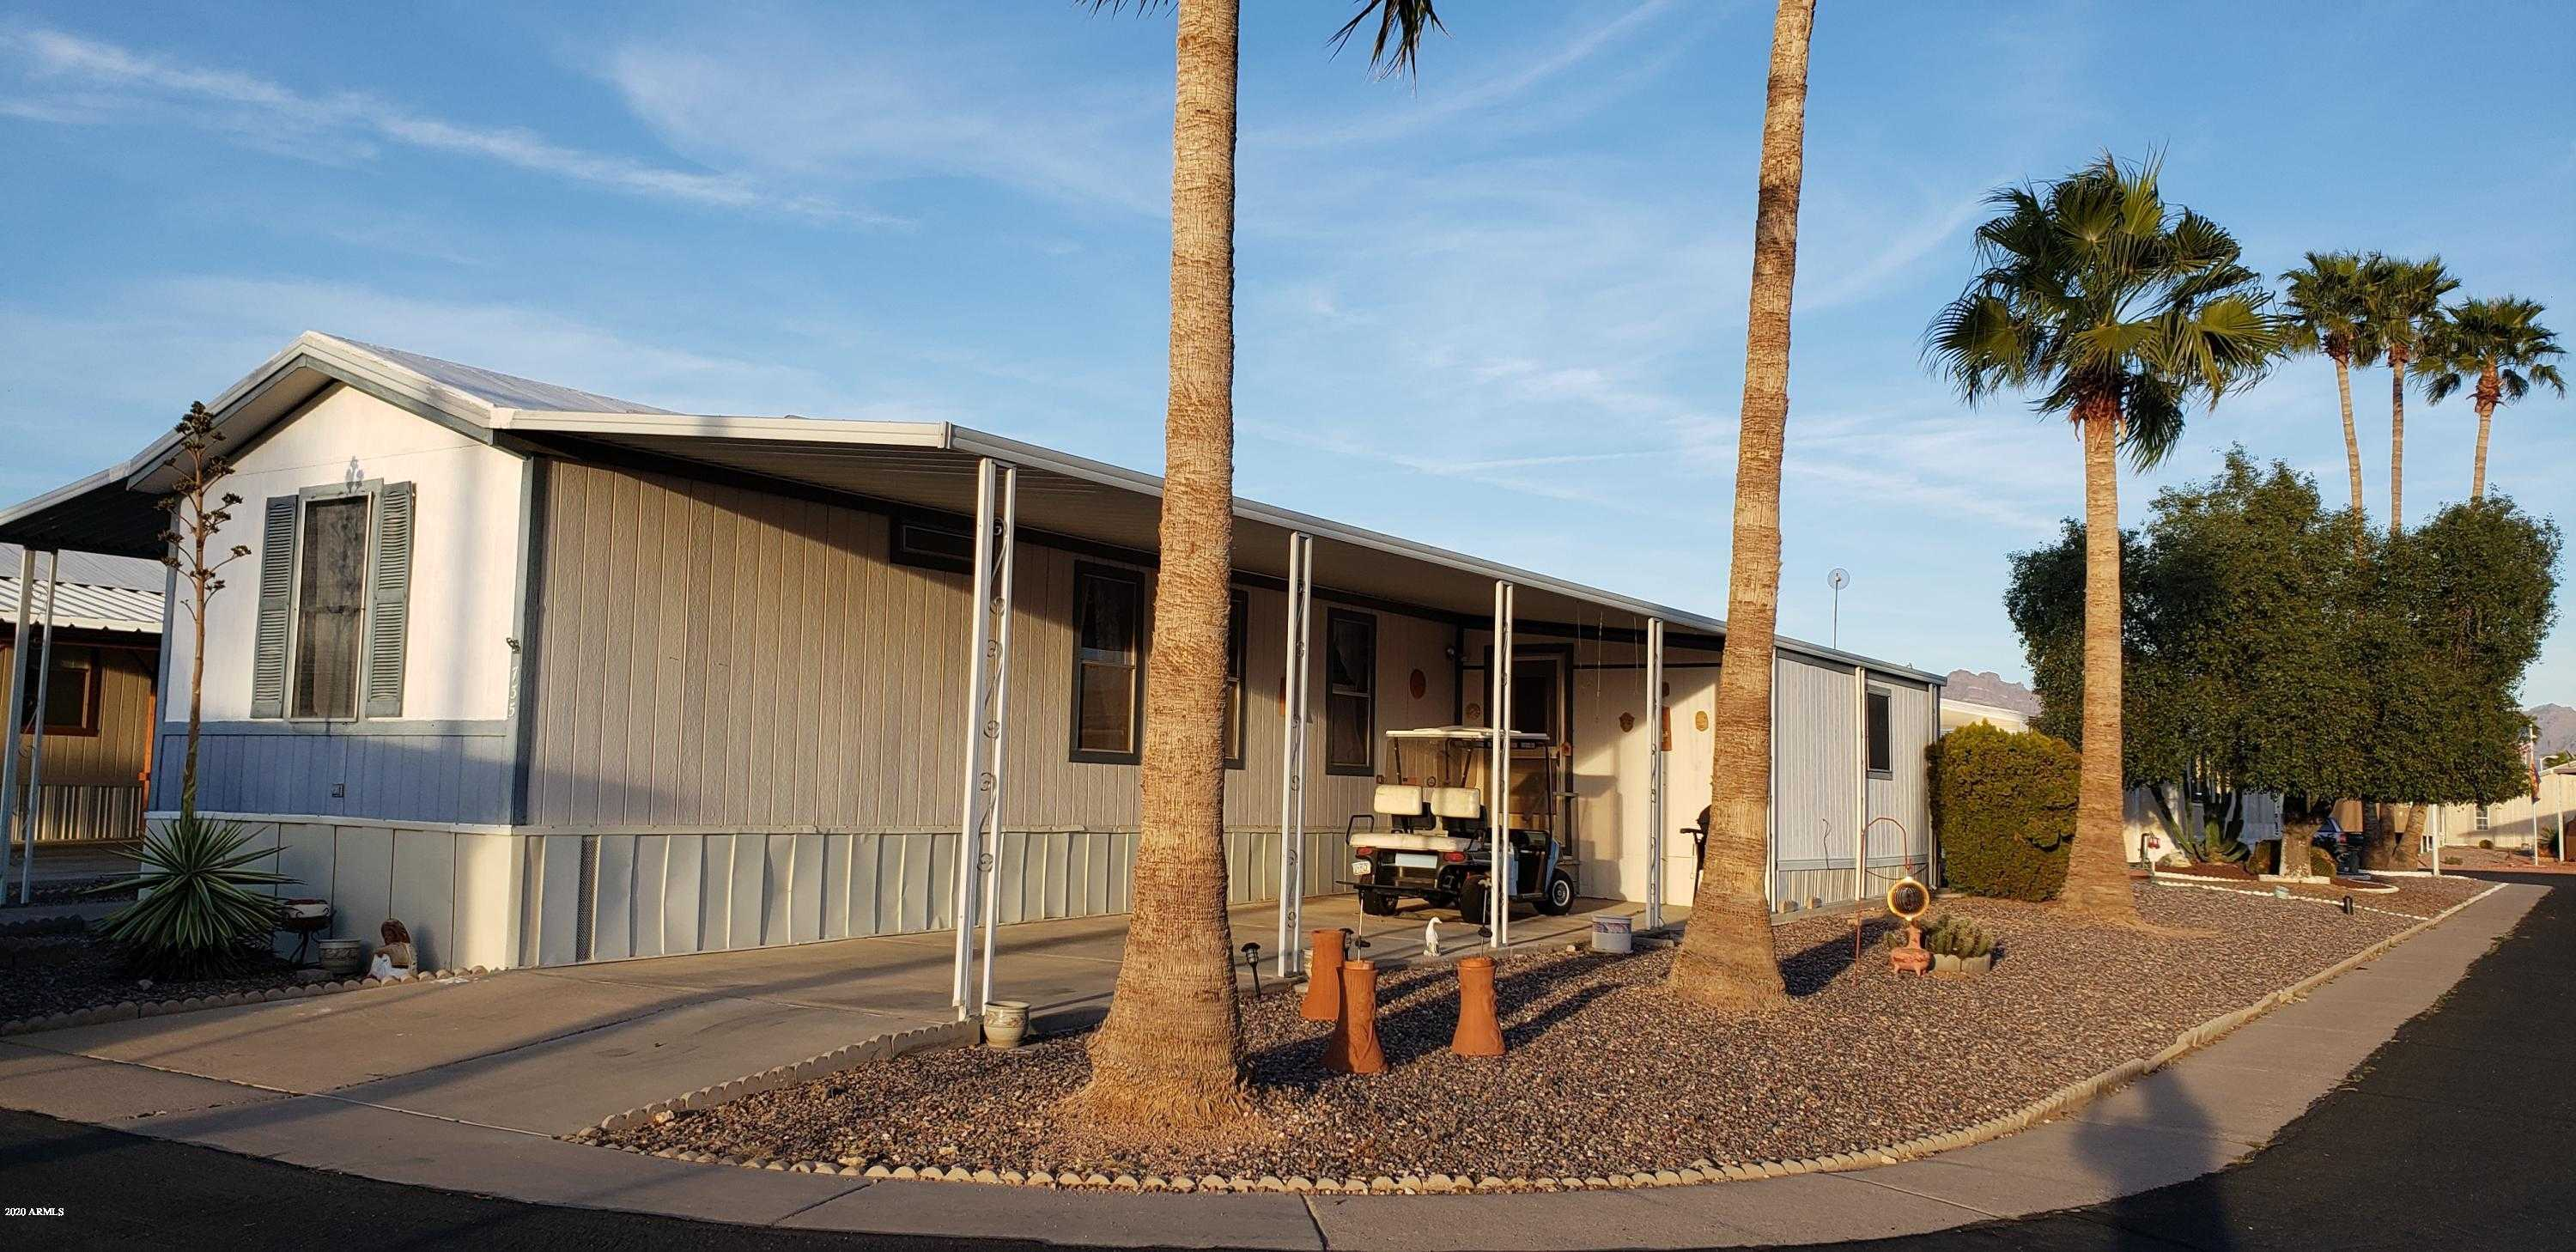 $15,000 - 3Br/2Ba -  for Sale in Superstition Buttes Mobile Home Park, Apache Junction